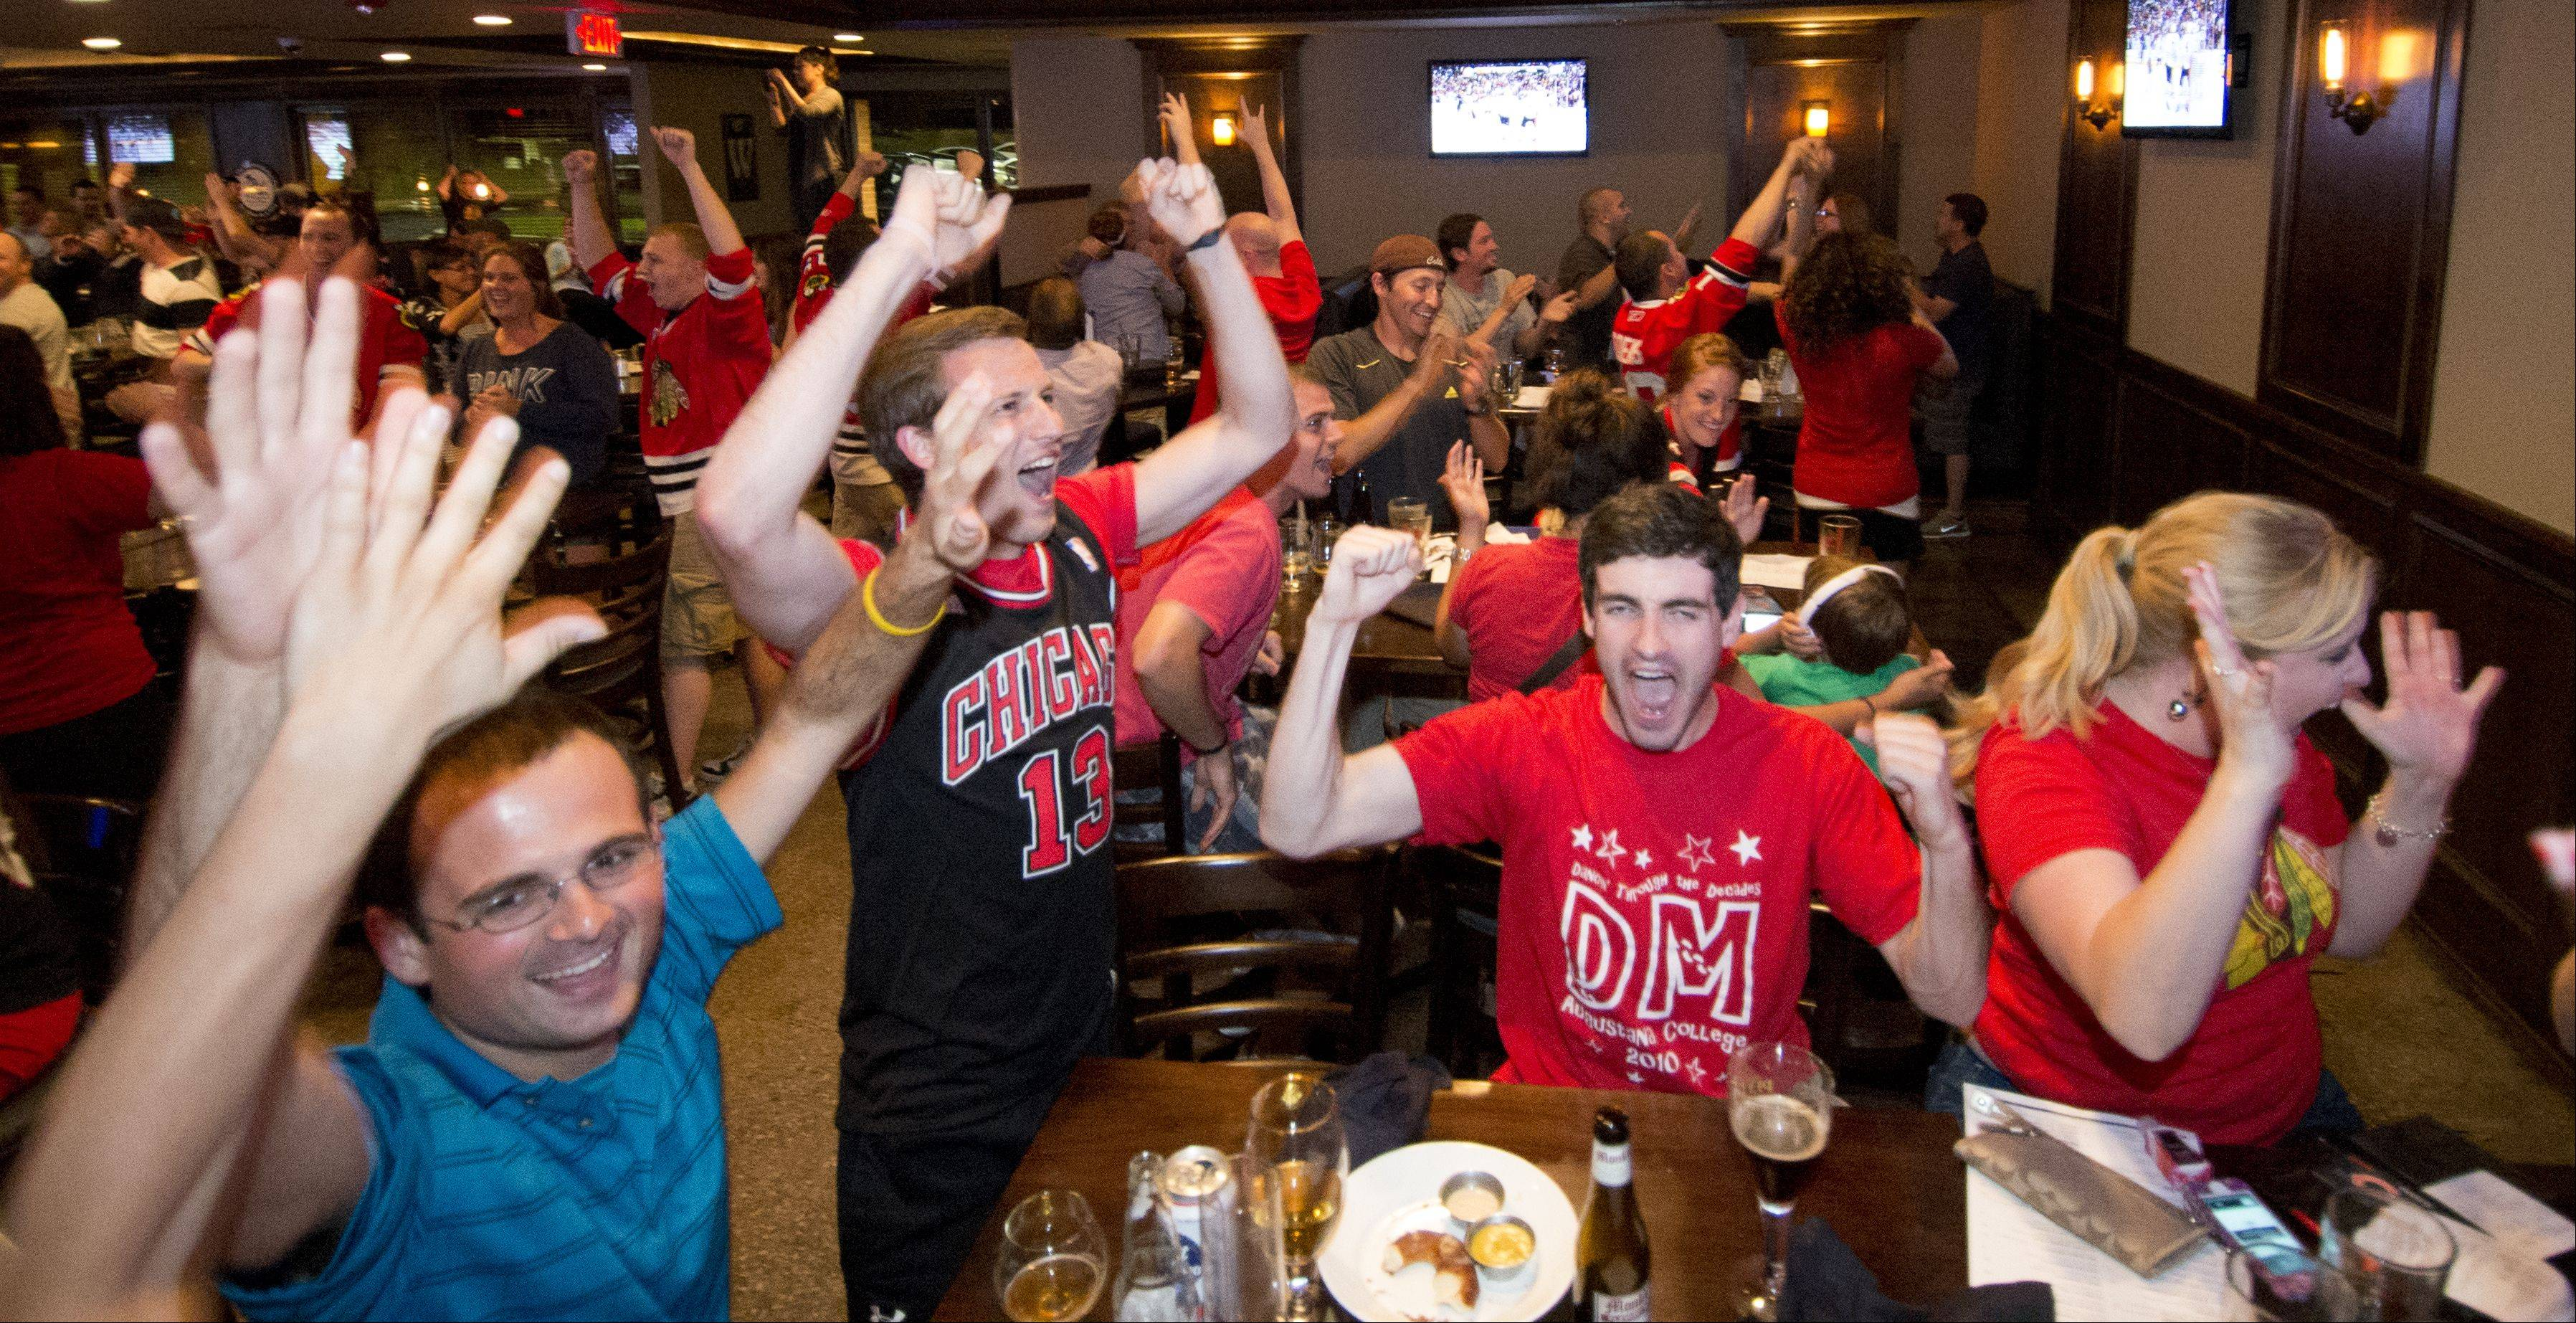 Fans cheer Monday at Warren's Ale House in Wheaton as the Blackhawks win the Stanley Cup.